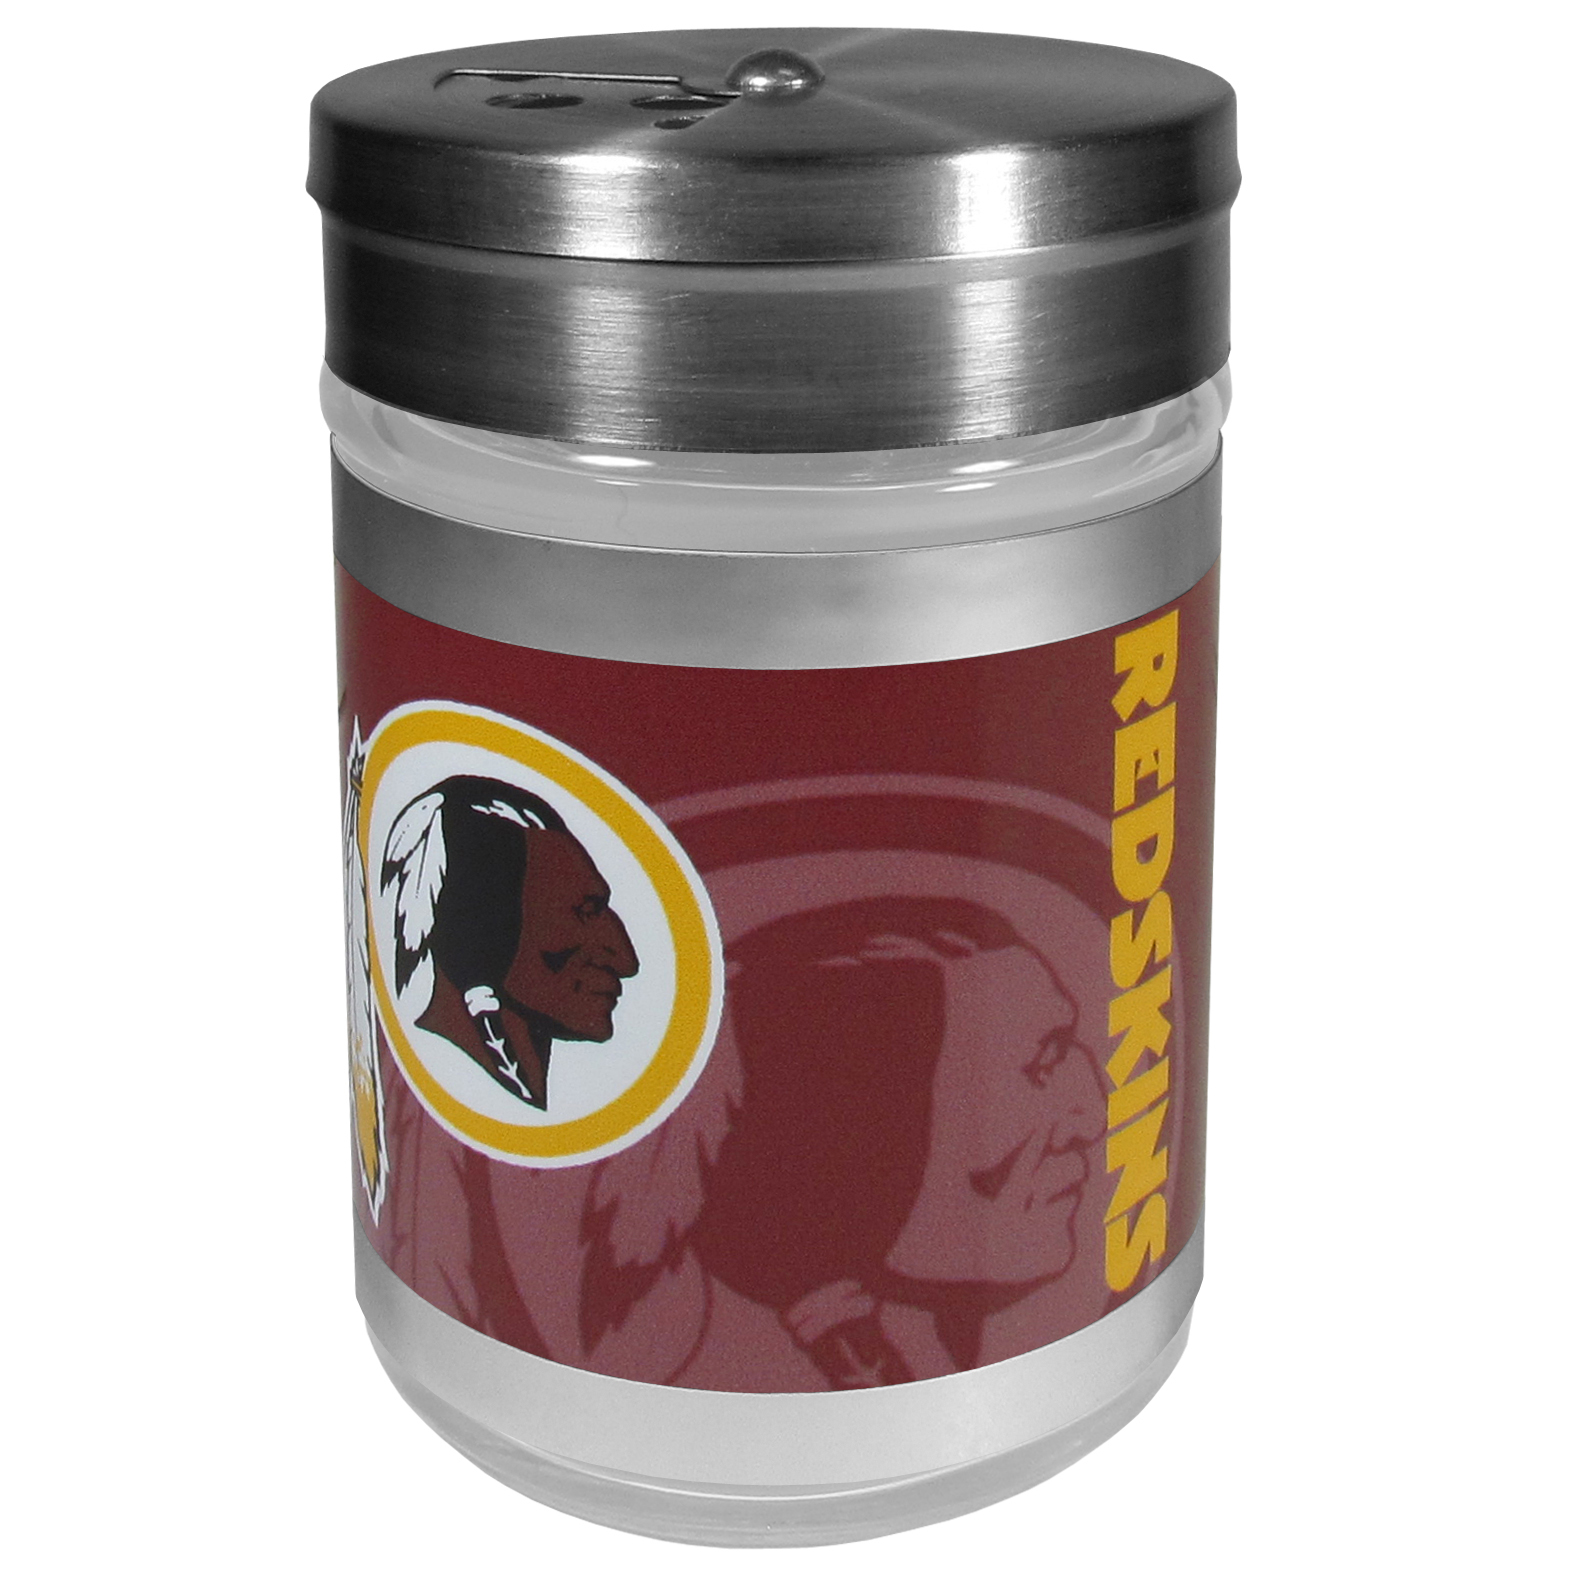 Washington Redskins Tailgater Season Shakers - Spice it up with our Washington Redskins tailgater season shakers! This compact shaker is 2 inch tall with a twist top that closes off the holes at the top making it perfect for travel preventing those messy spills. The shaker has wide holes perfect for keeping your pepper seeds or cheese toppings. The bright team graphics will make you the envy of the other fans while you are grilling up your tailgating goodies.